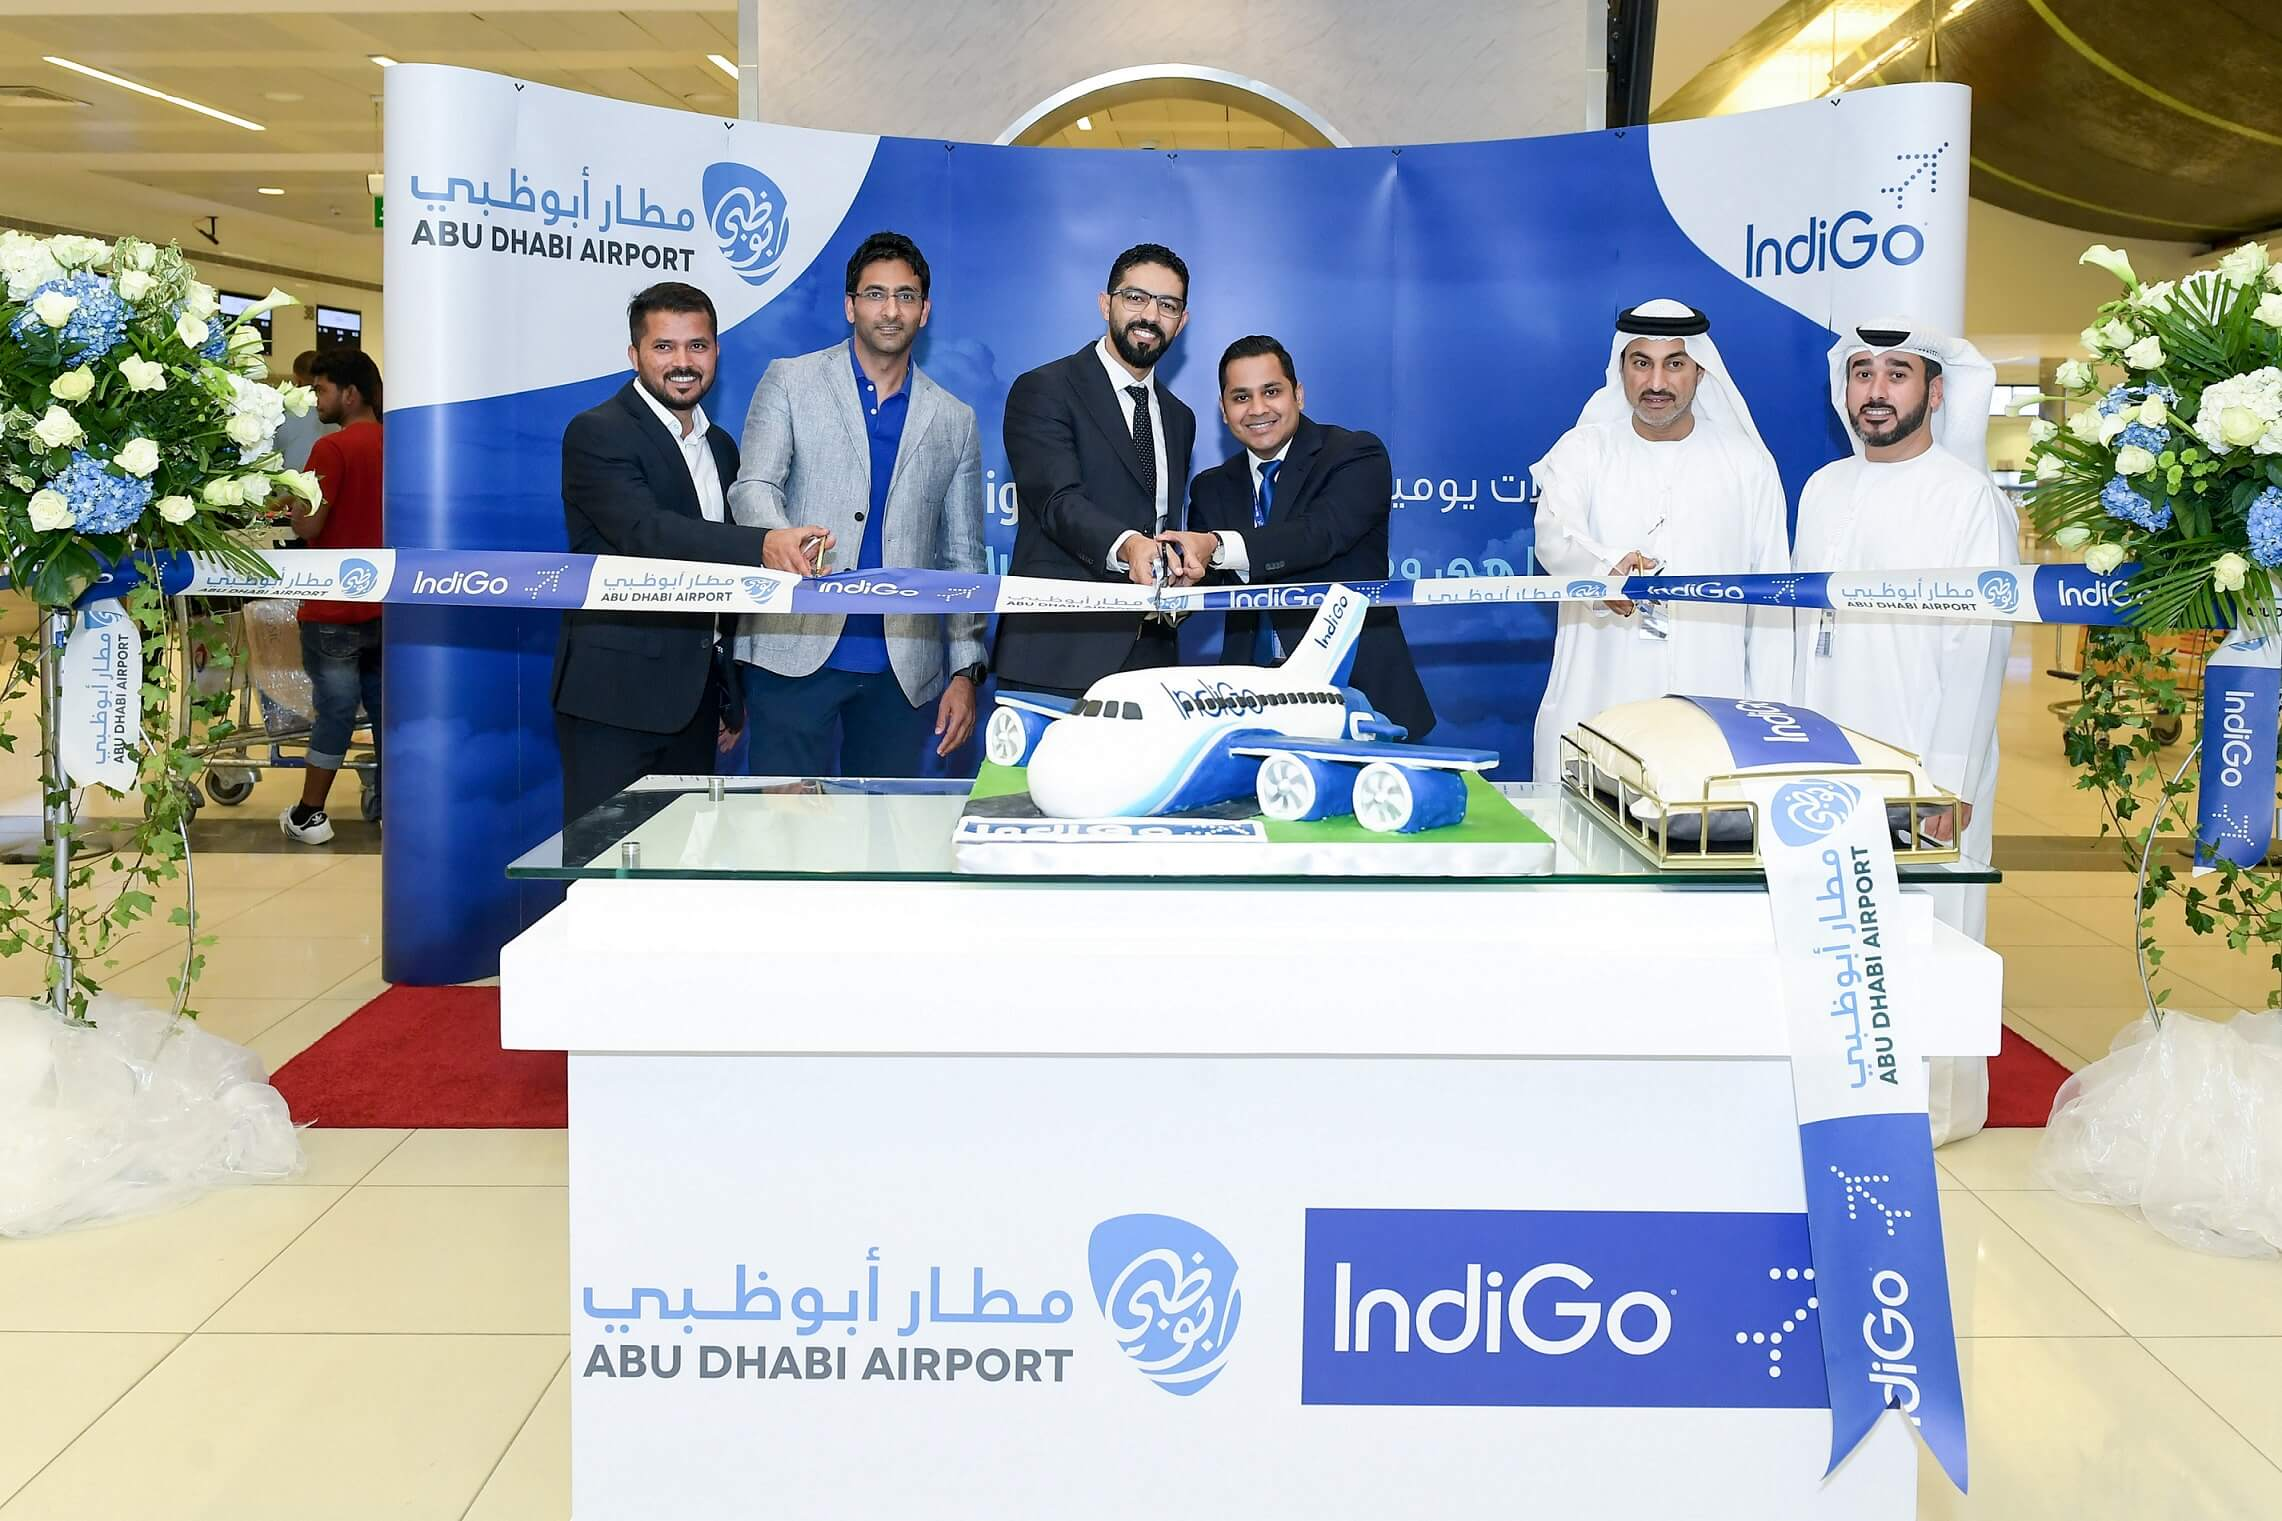 IndiGo launches 2 new India-Abu Dhabi routes